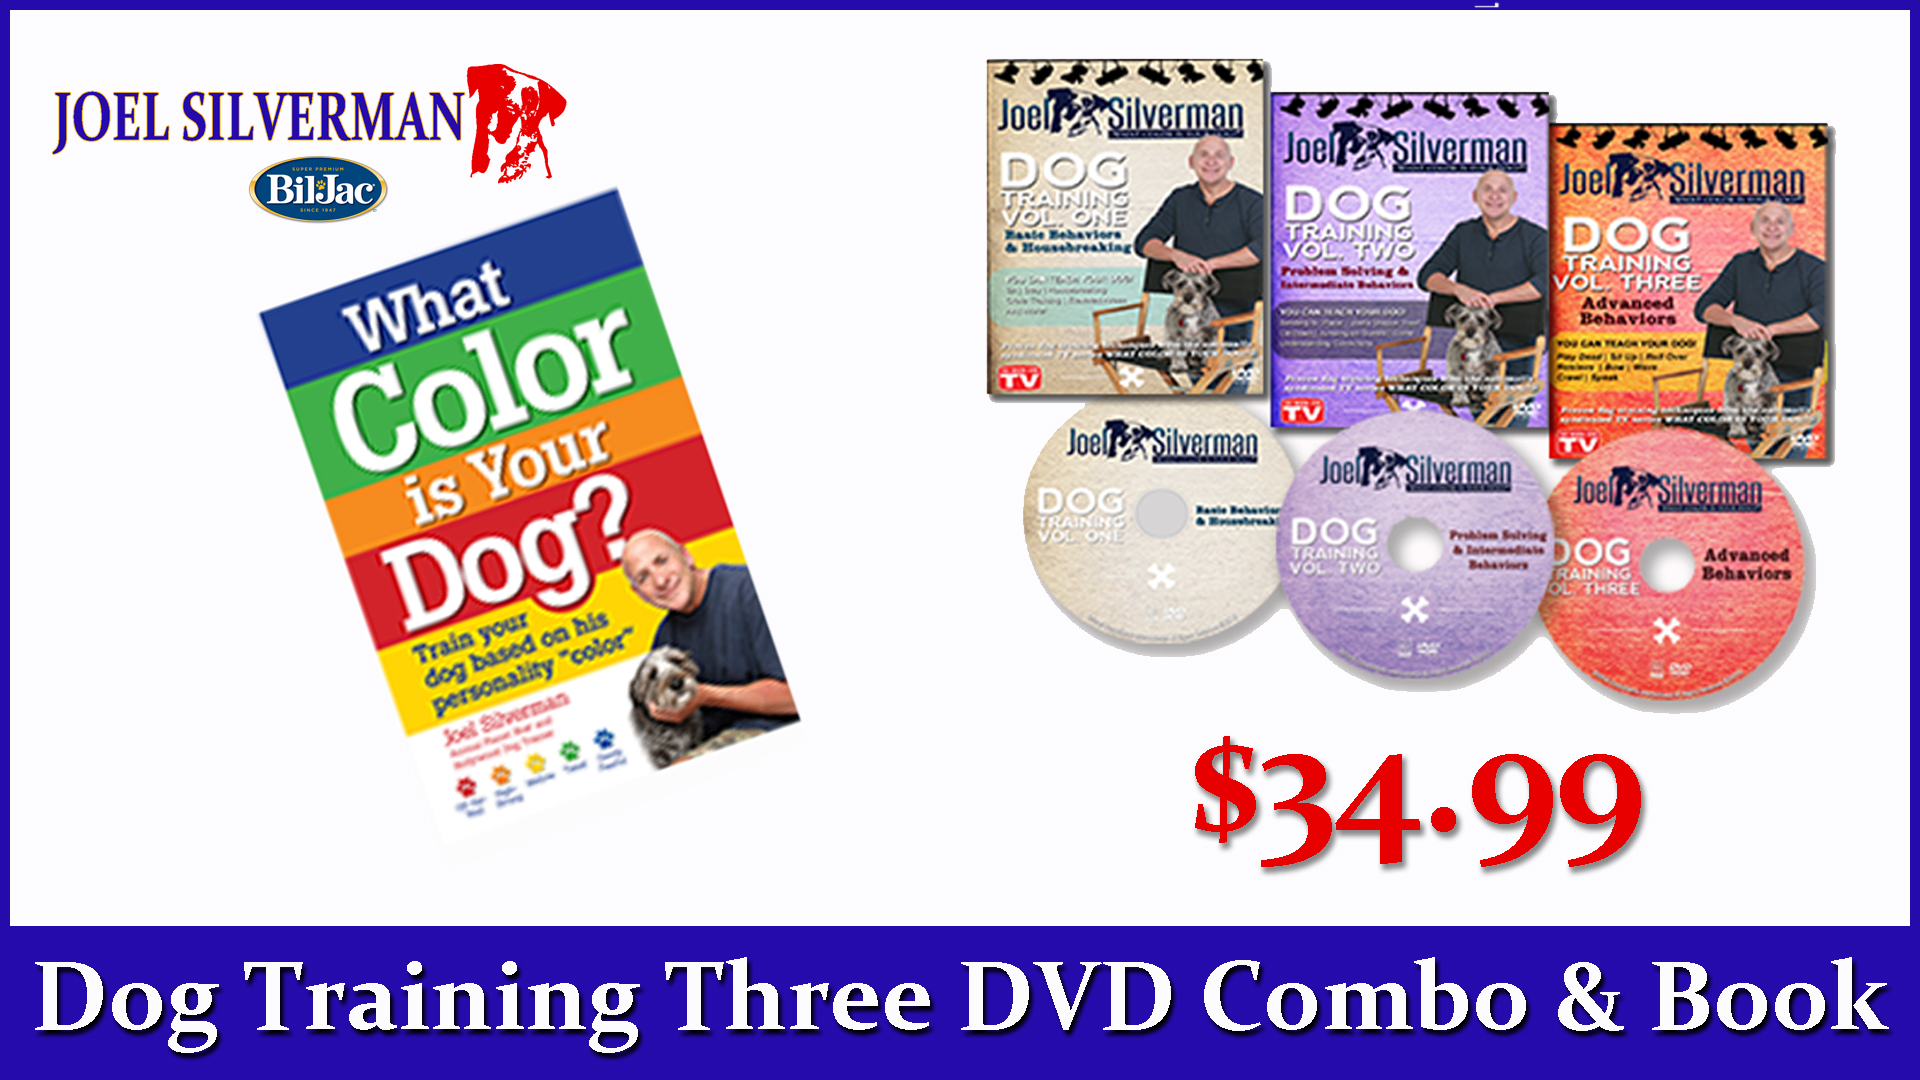 Joel Silverman's 3 DVDs   What Color Is Your Dog? Book